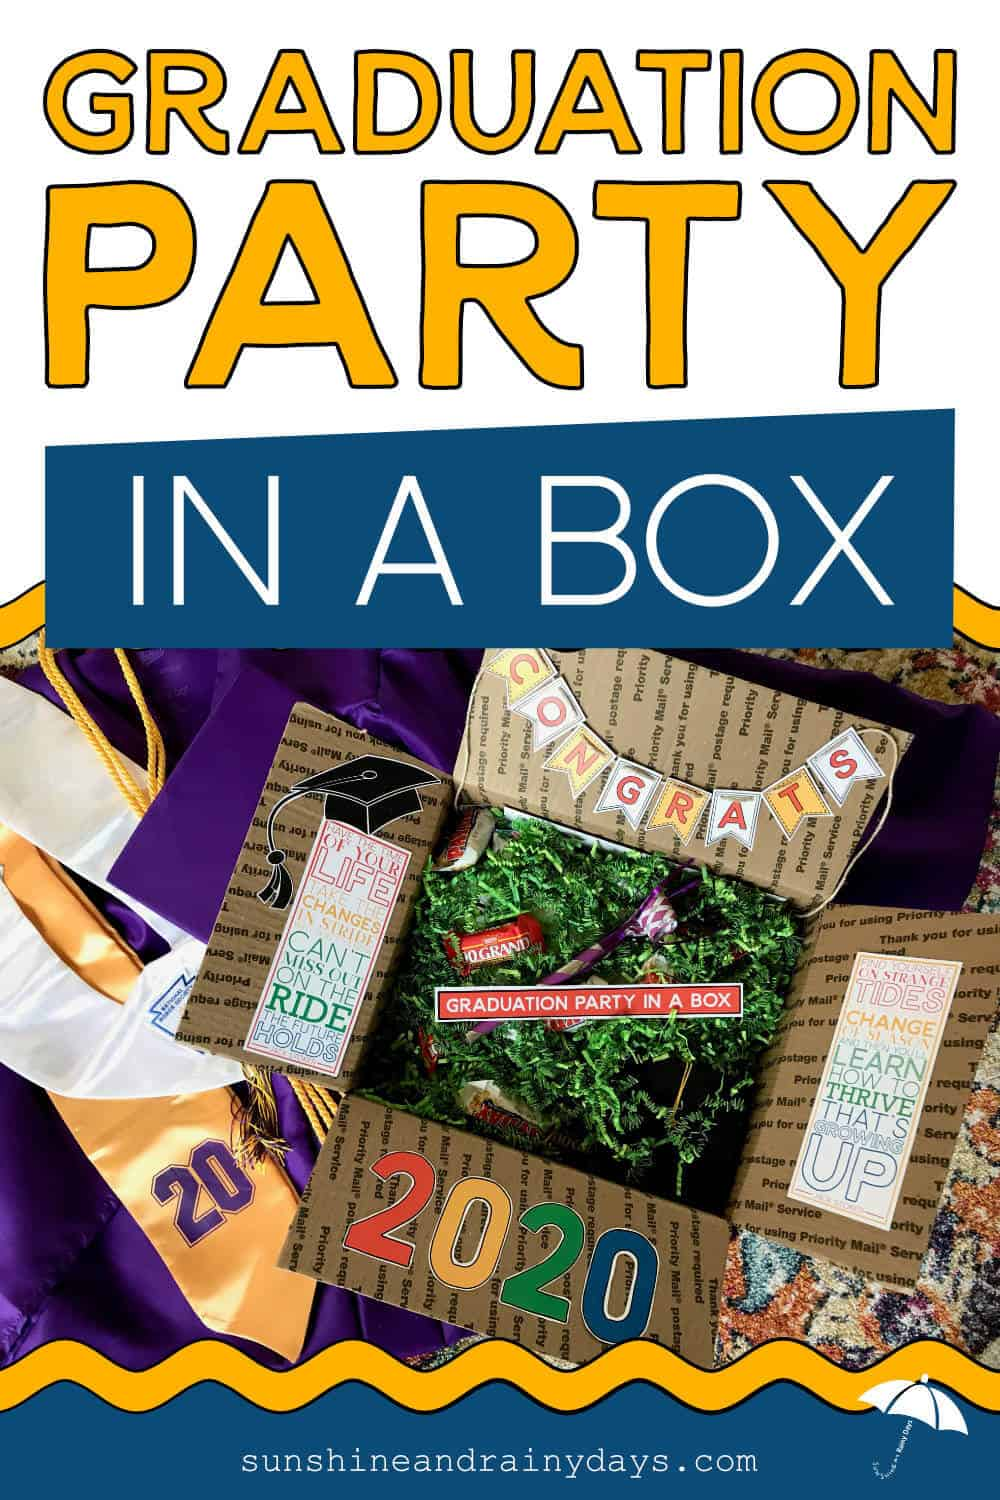 Graduation Party In A Box with a box full of Graduation Gifts and Party Supplies